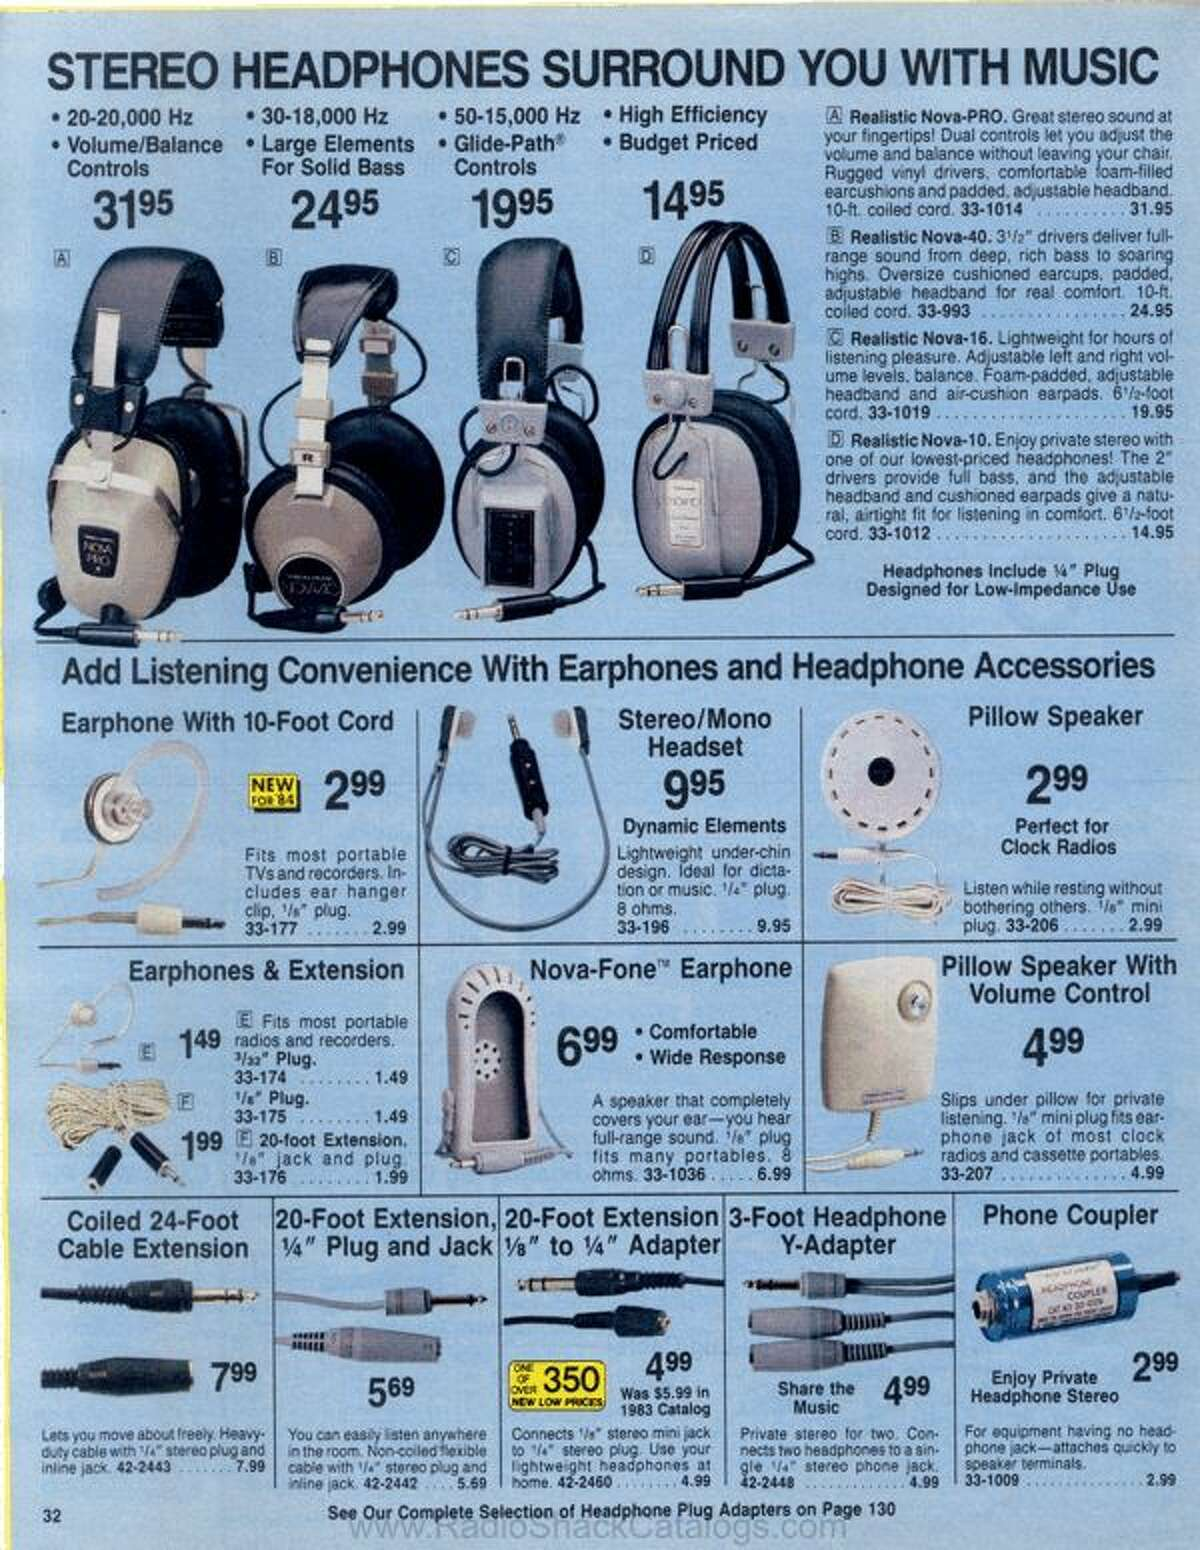 Beats by Grandmaster Flash?   A RadioShack fansite has scanned in most every catalog that the electronics store has put out for the past 70 years. For the 2019 holiday gift-giving season we took a look at the items that were in high demand 30 years ago in 1984.